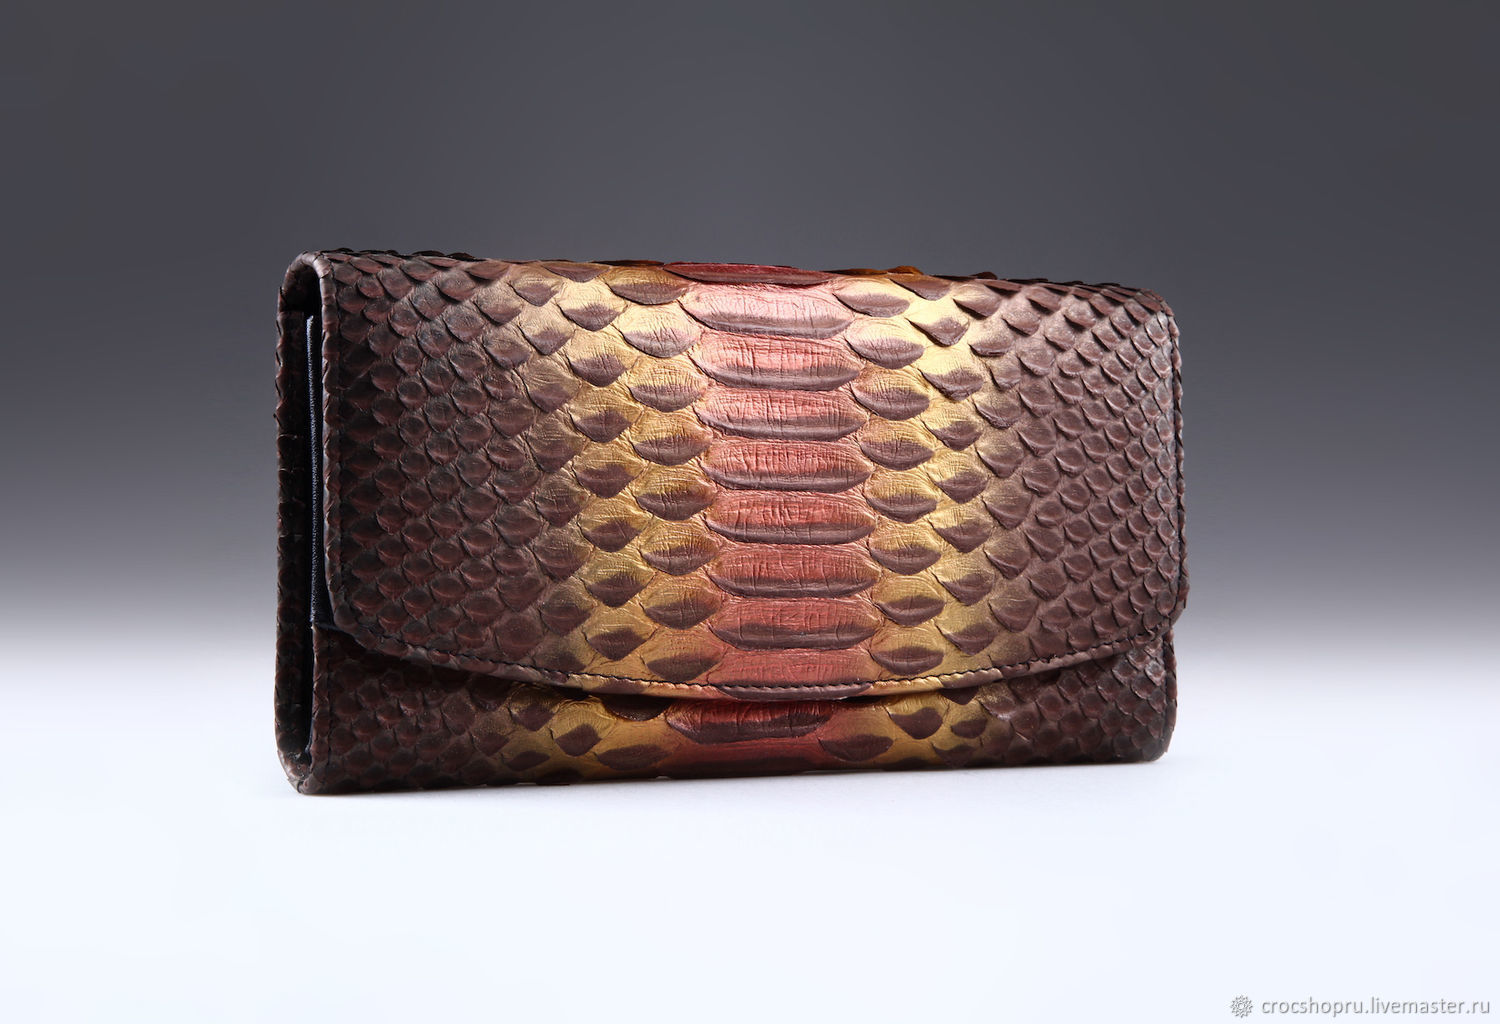 Python leather wallet IMP0048A28, Wallets, Moscow,  Фото №1